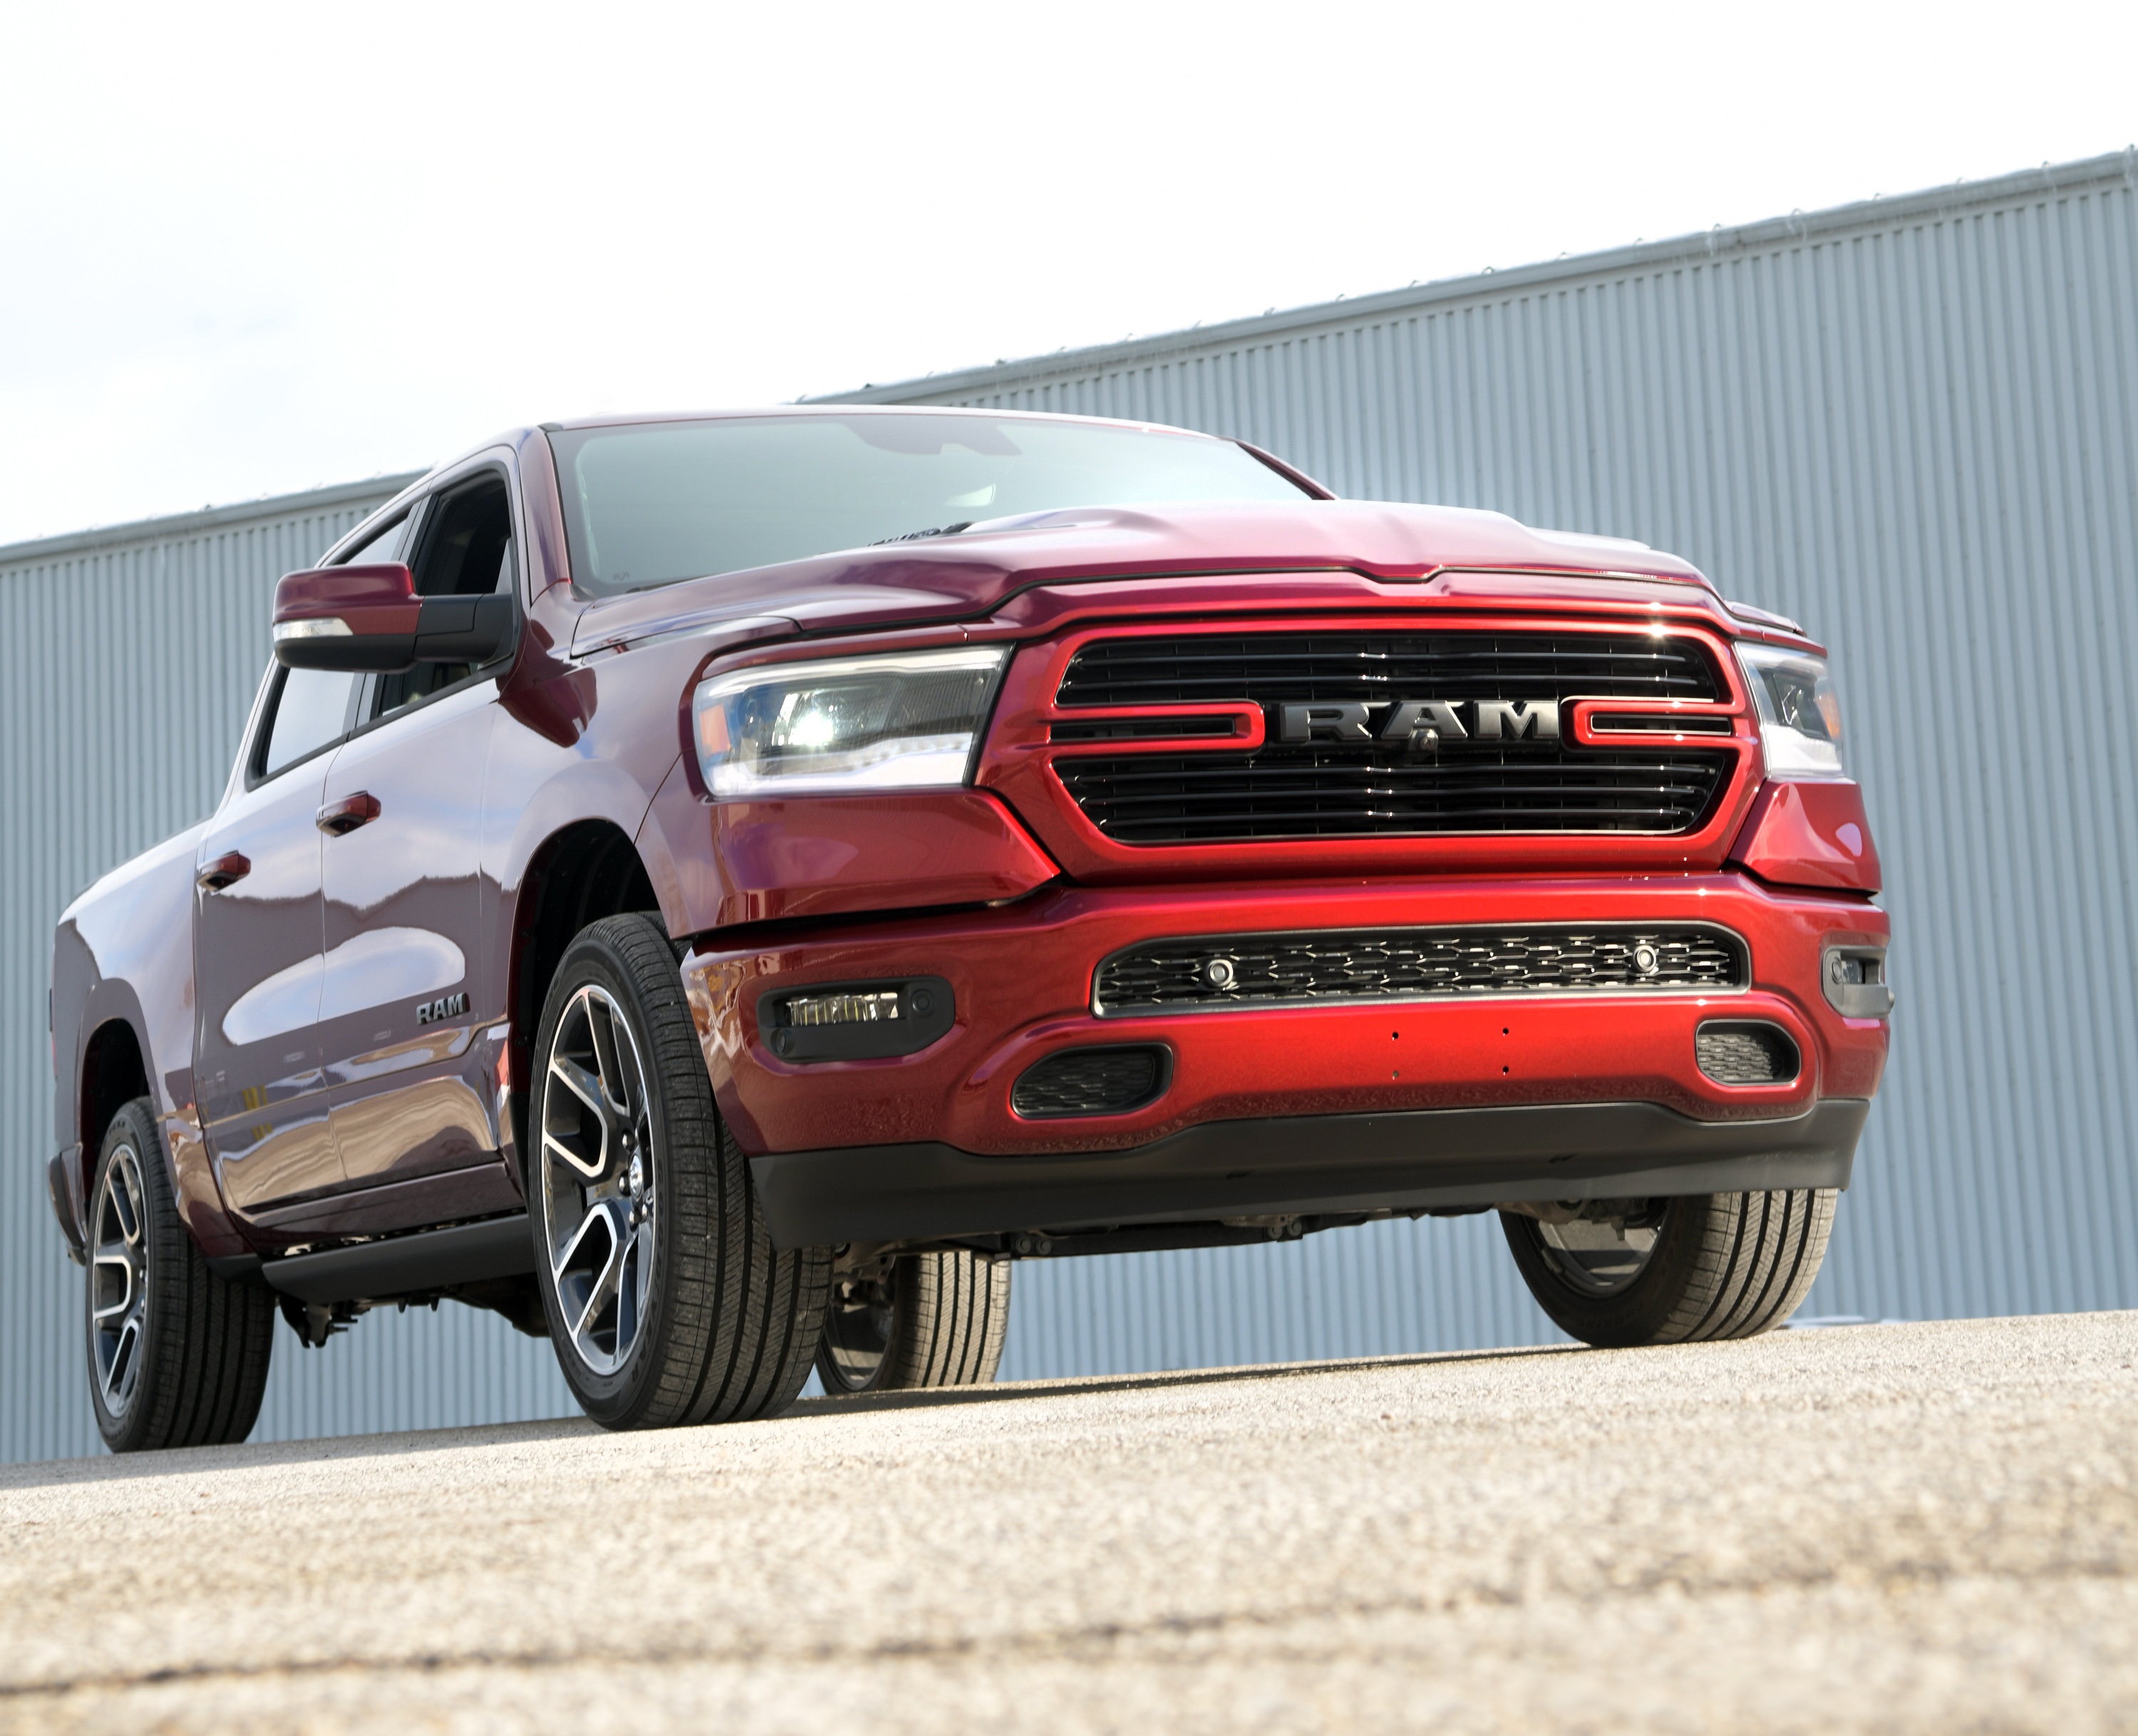 2019 ram 1500 special editions unveiled for canadians texans. Black Bedroom Furniture Sets. Home Design Ideas